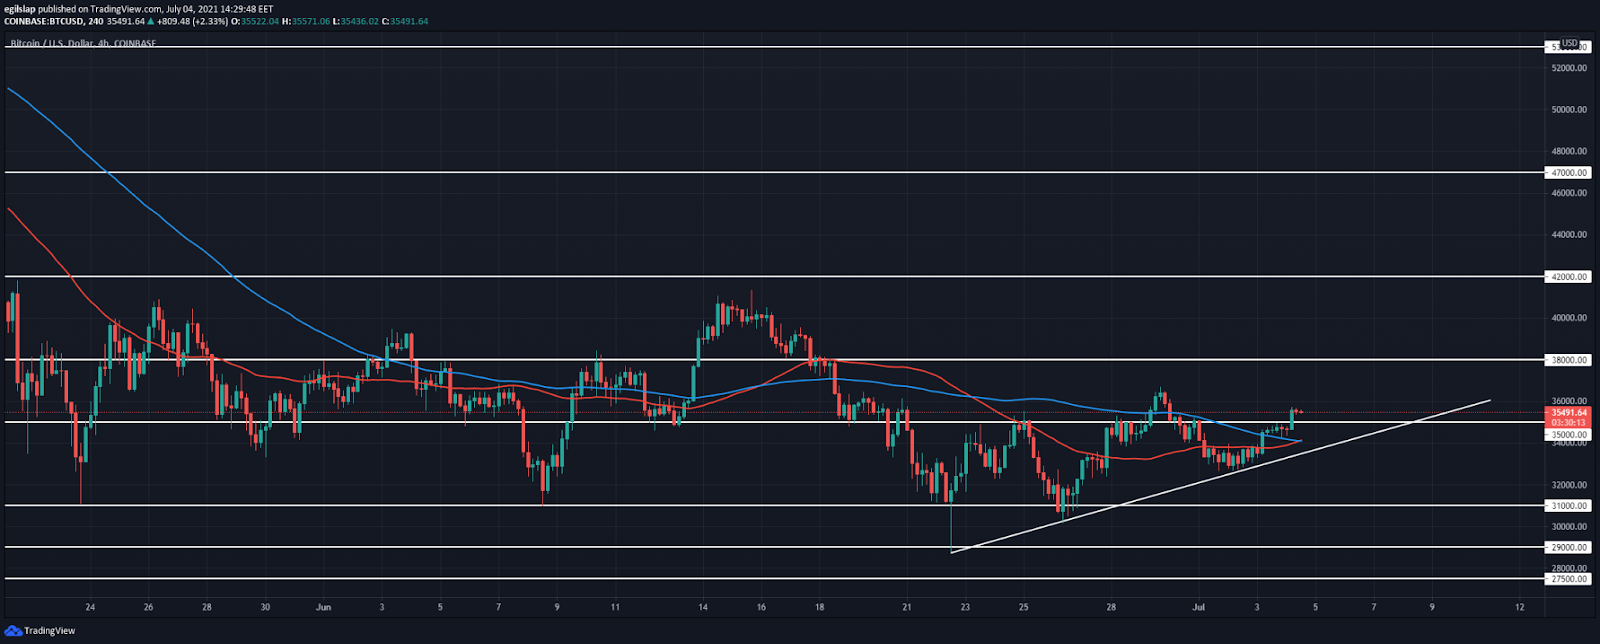 Bitcoin price analysis: BTC moves higher overnight, ready to spike to $38,000 next?